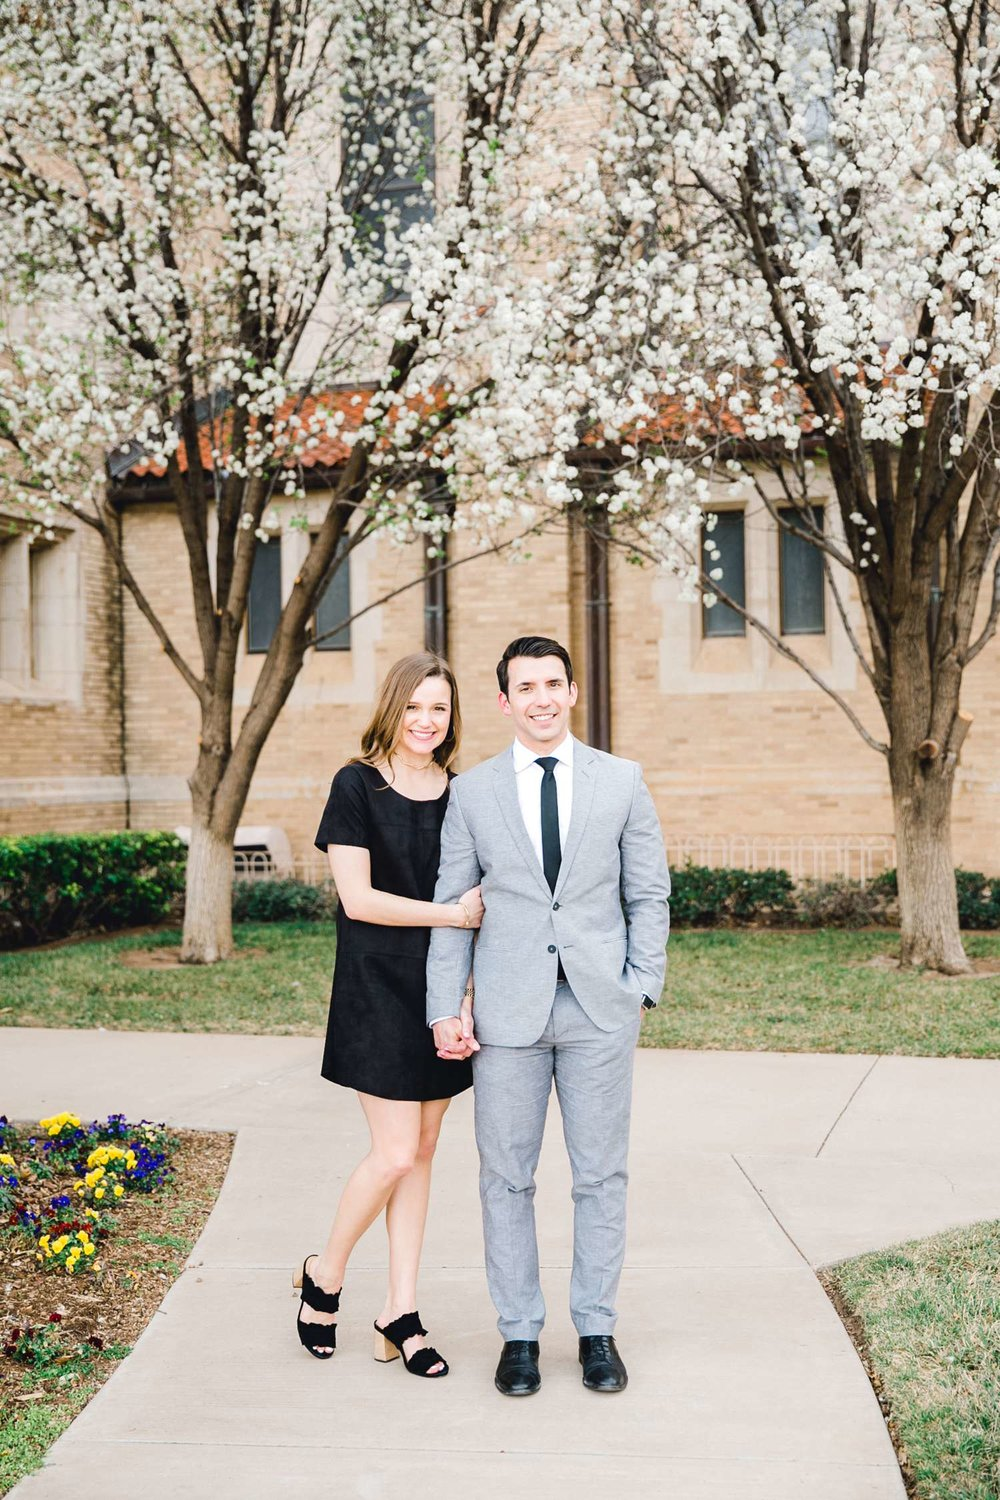 CAROLINE+CHRISTIAN+ALLEEJ+ENGAGEMENTS+LUBBOCK+WEDDING+PHOTOGRAPHER+FIRST+BAPTIST+CHURCH_0028.jpg